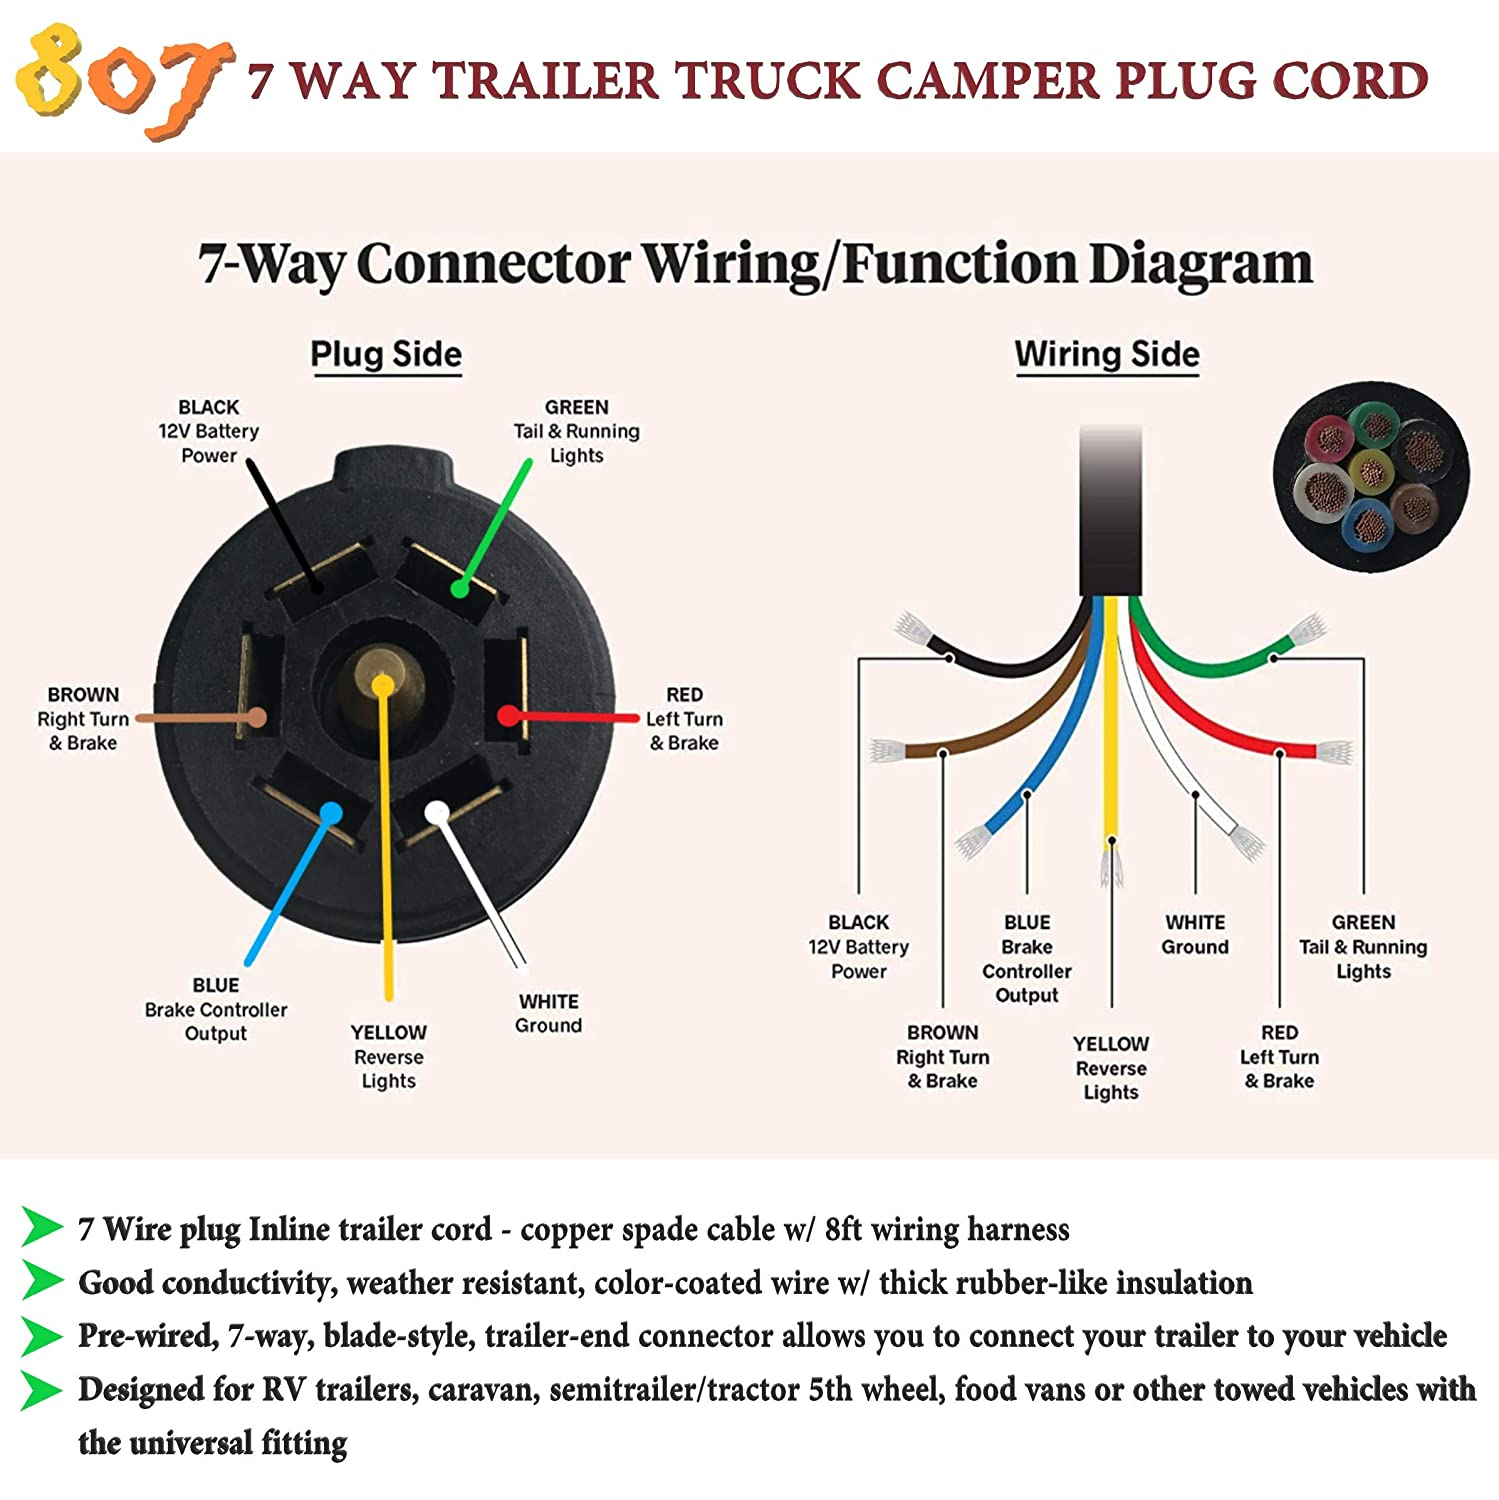 DIAGRAM] U Haul 7 Pin Trailer Plug Wiring Diagram FULL Version HD Quality Wiring  Diagram - RITUALDIAGRAMS.BANDAKADABRA.ITBandakadabra